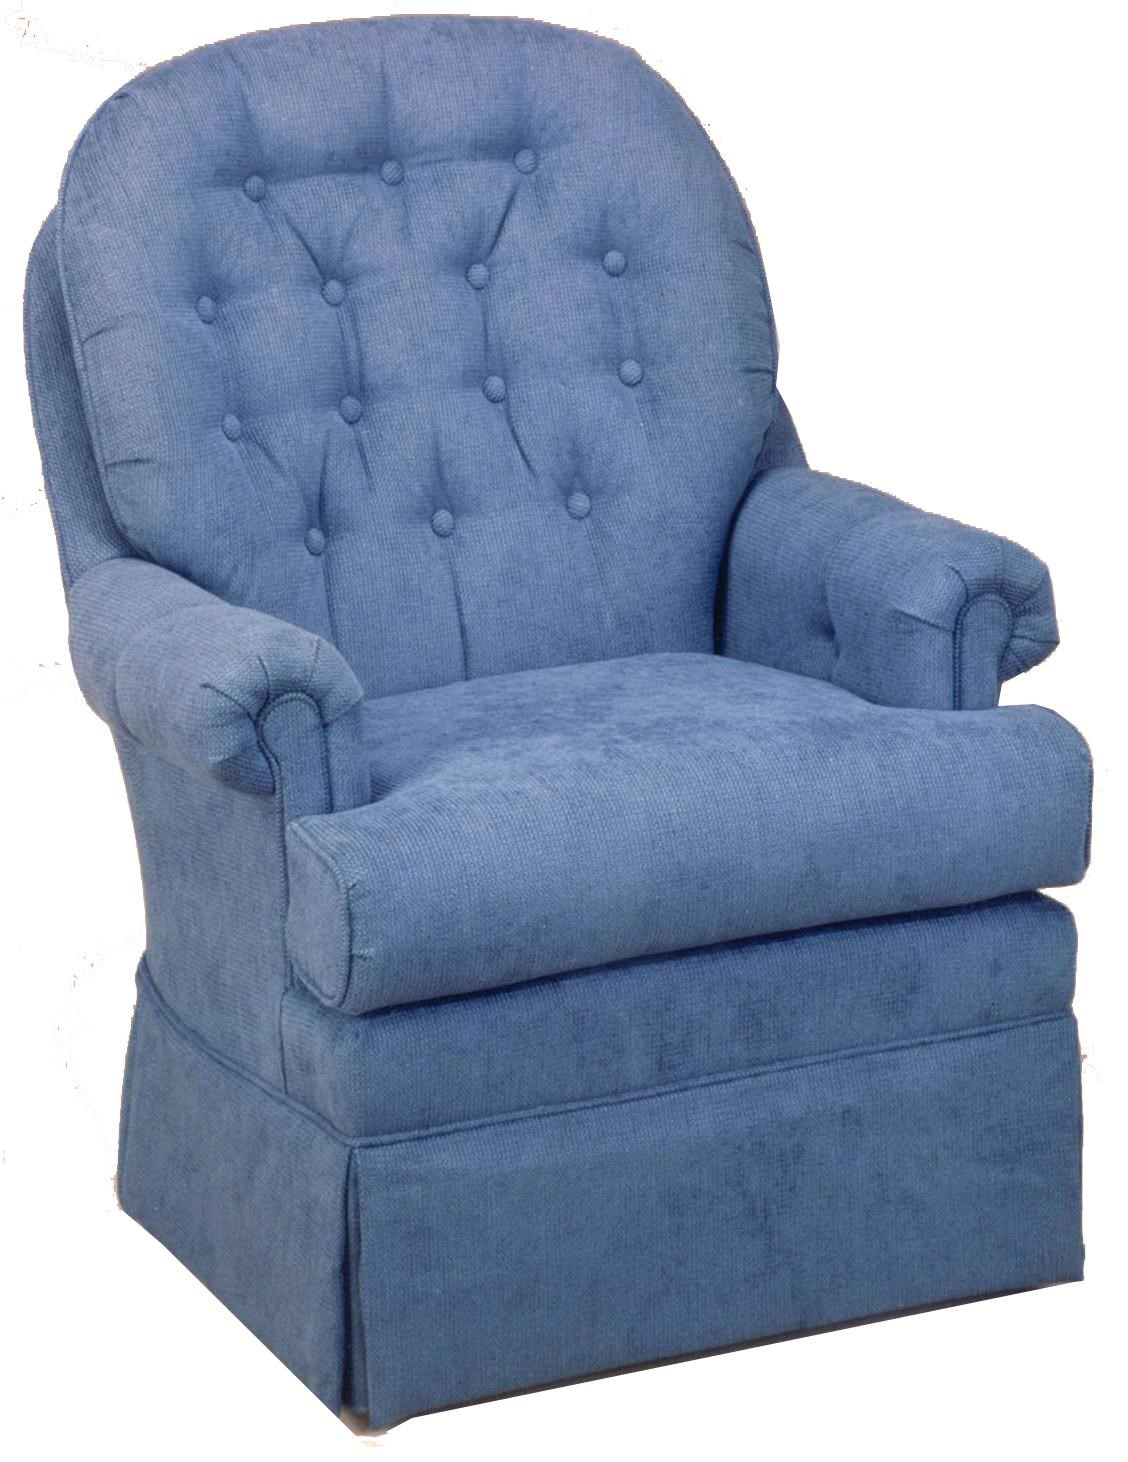 Best Chairs Storytime Series Storytime Swivel Chairs And Ottomans Beckner  Swivel Chair With Tufted Back